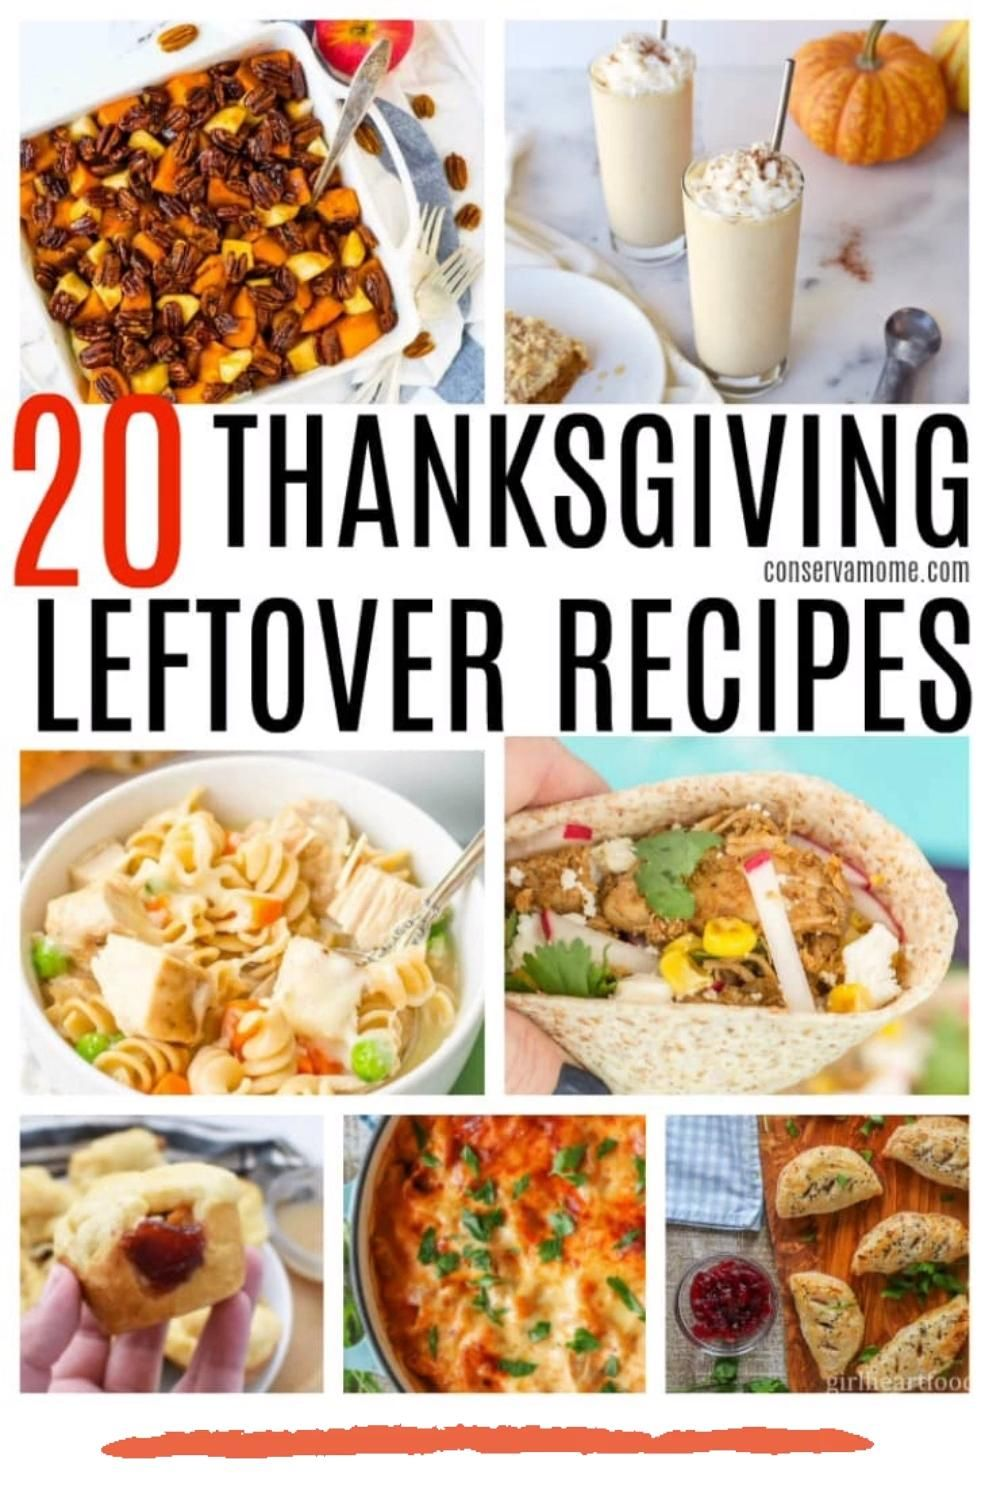 20 Easy And Delicious Thanksgiving Leftover Recipes Video Video In 2020 Thanksgiving Leftover Recipes Leftovers Recipes Thanksgiving Recipes